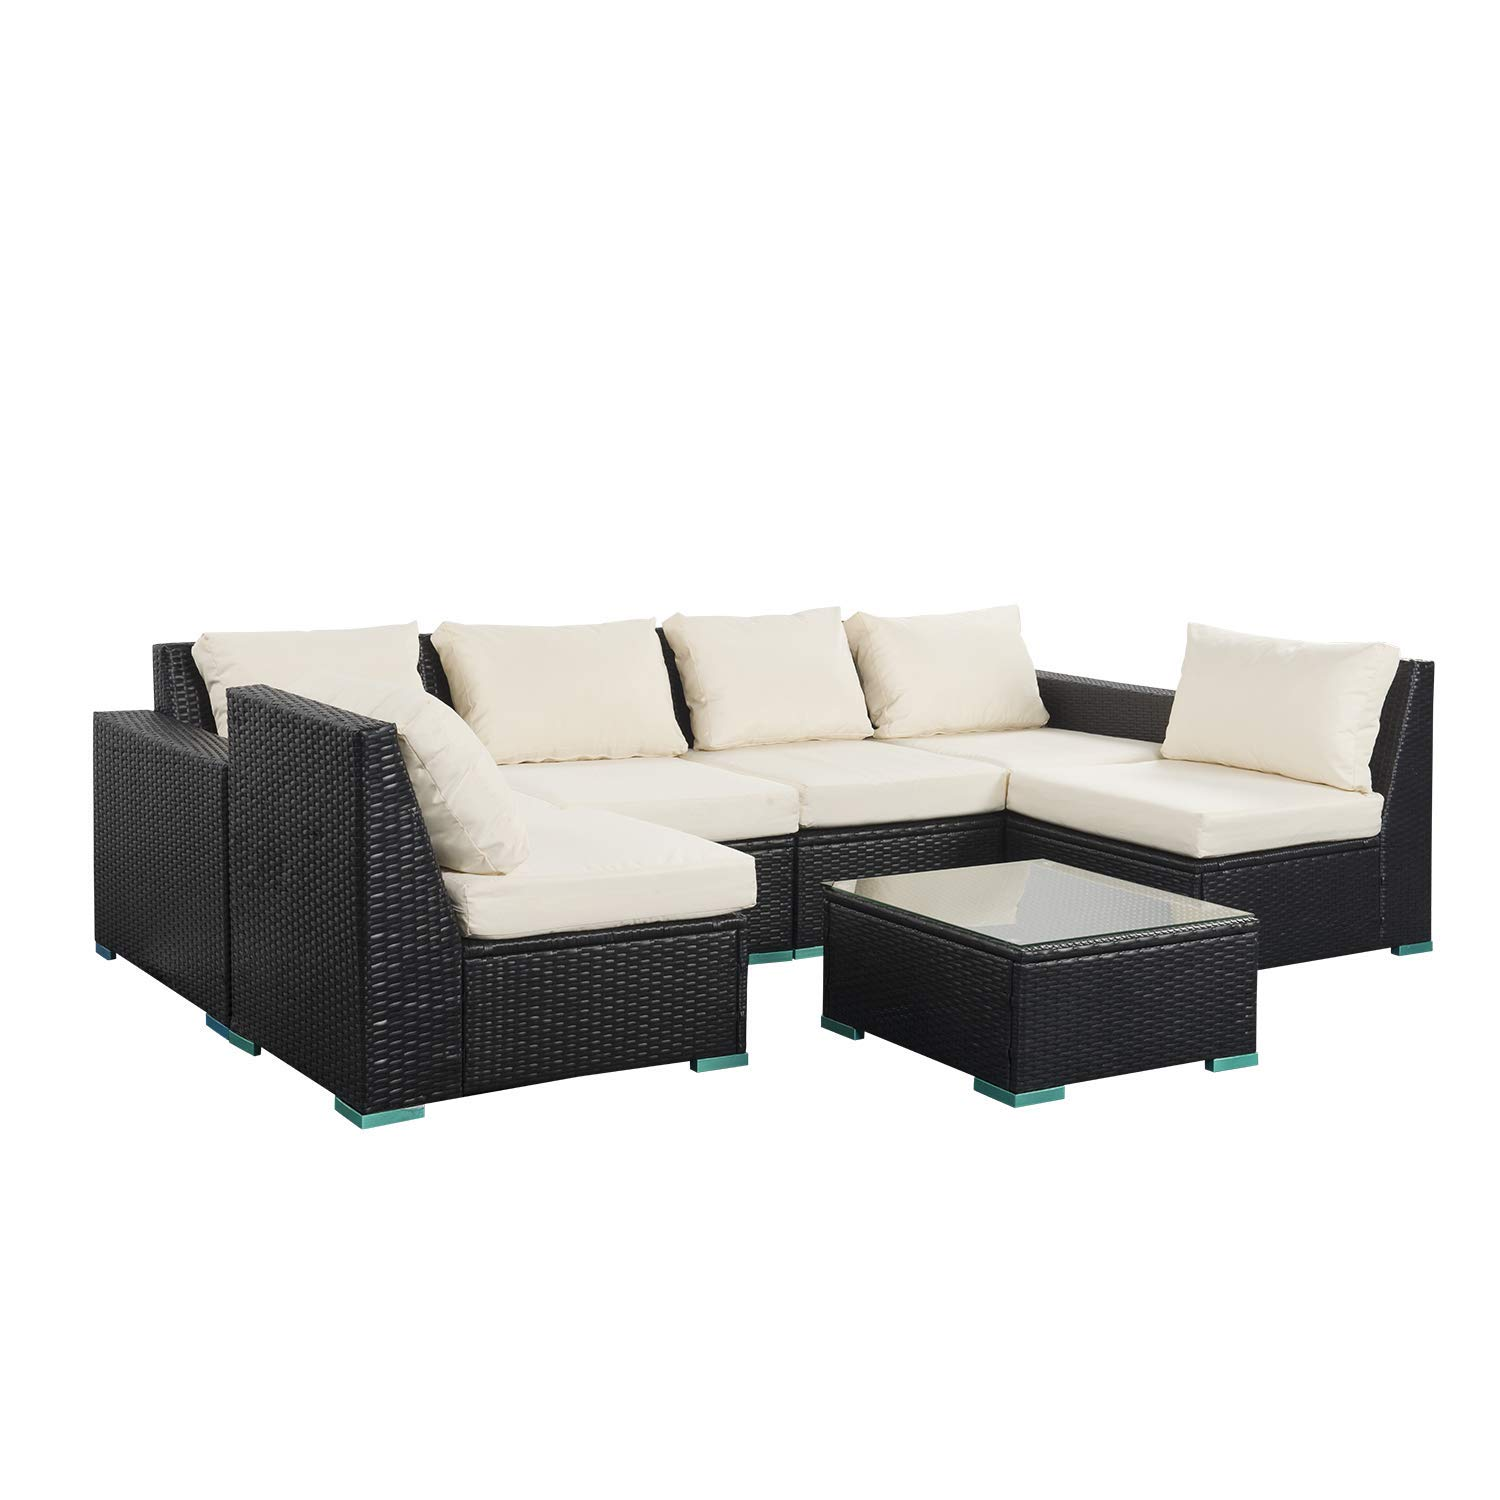 Get Quotations 7 Pieces Outdoor Patio Furniture Pe Rattan Wicker Conversation Sofa Sets With Cushions